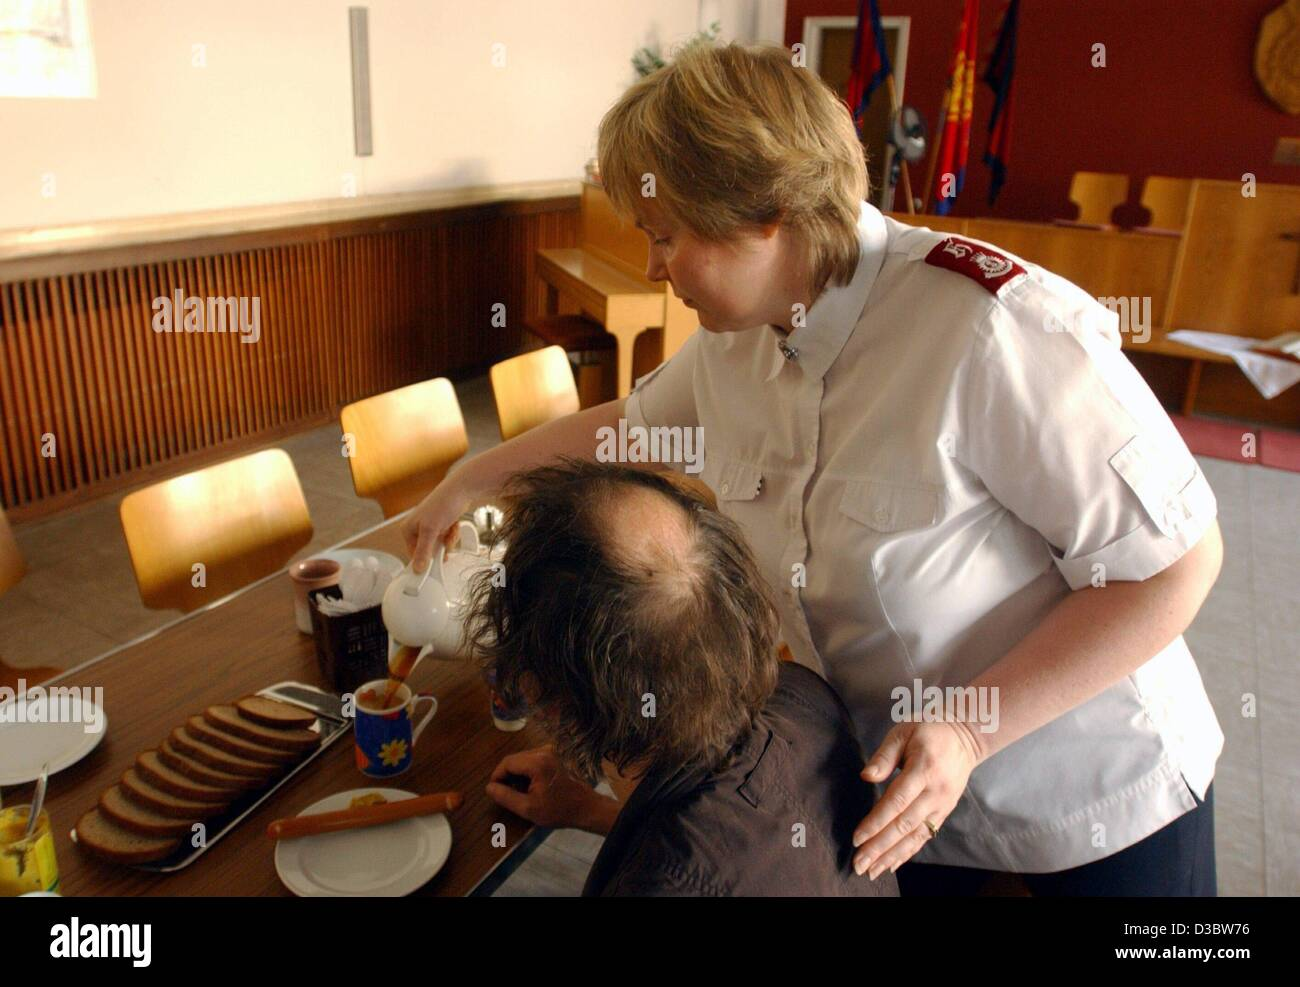 (dpa) - A female Major of the Salvation Army pours cup of tea for a man in need, in Cologne, Germany, 29 July 2003. - Stock Image